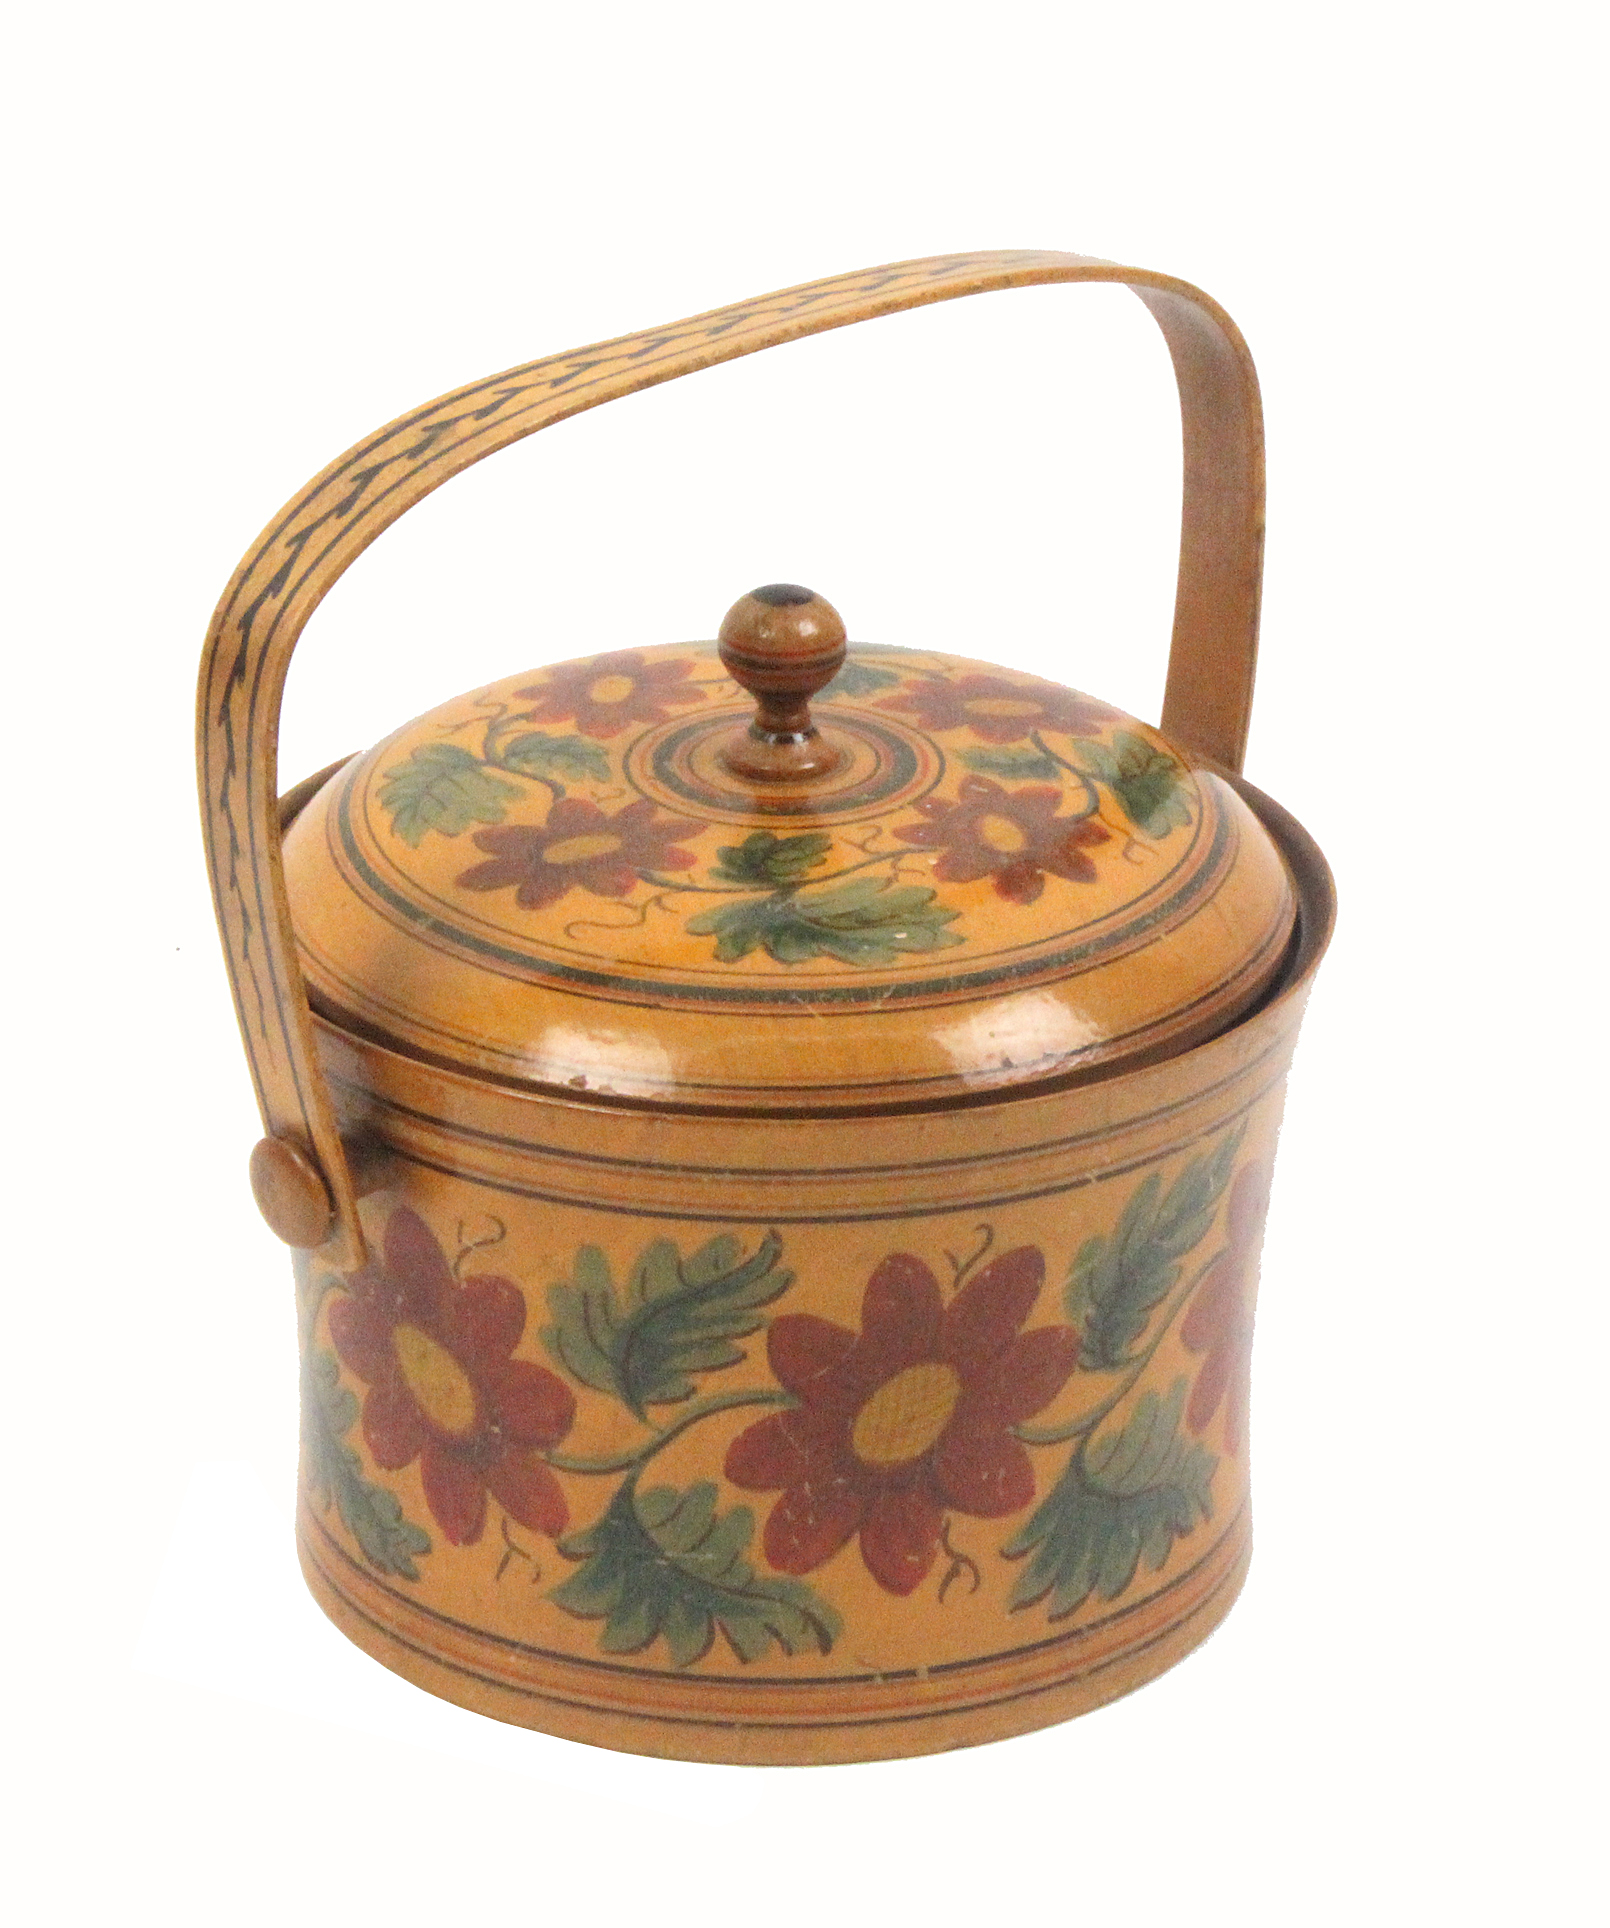 Lot 27 - A good early Tunbridge ware floral painted sewing pannier, of delicate turned form the swelling body